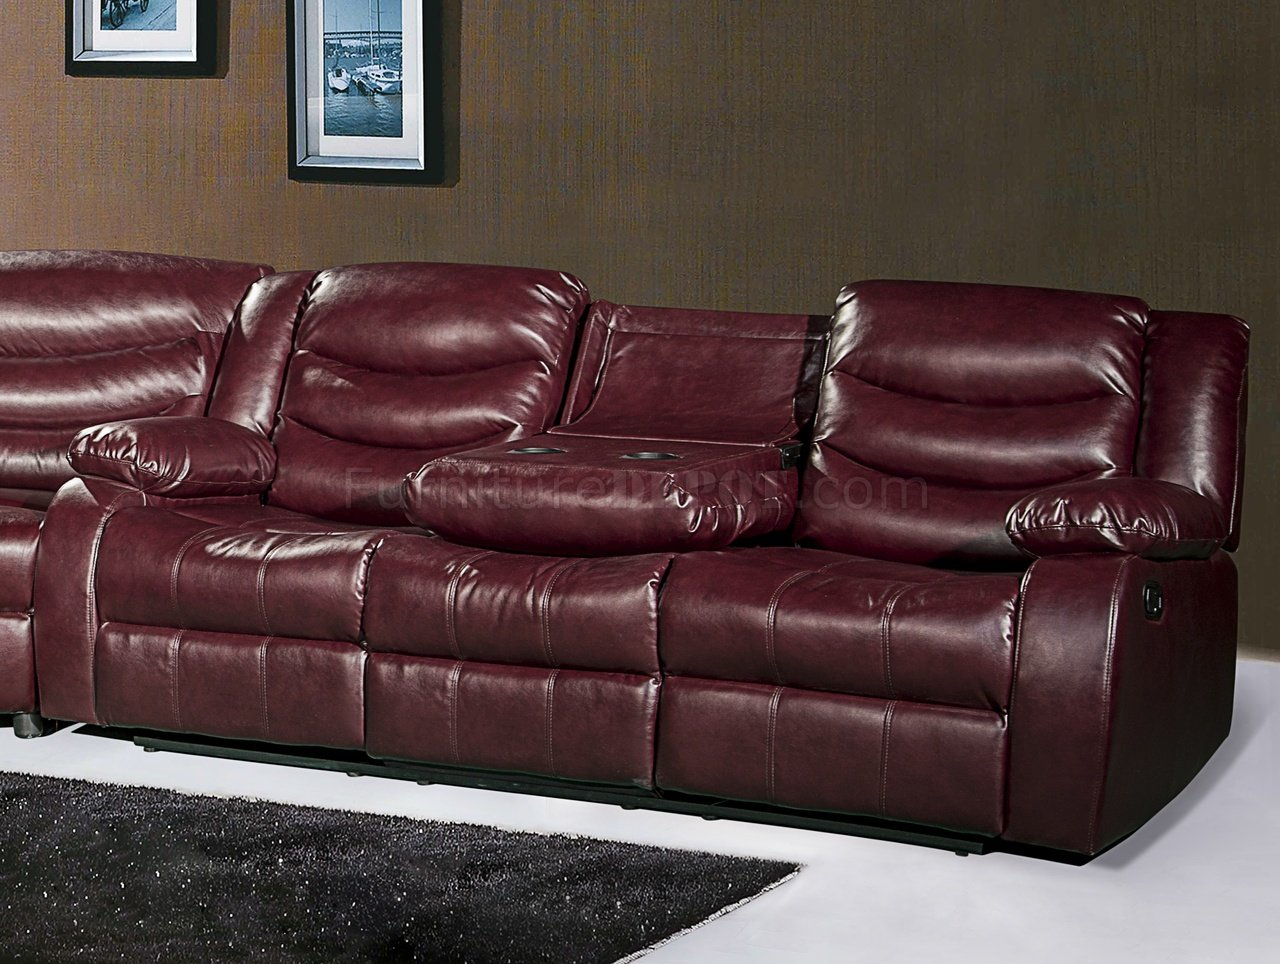 sectional sofas and recliners red plaid sofa gramercy 644 motion in burgundy bonded leather